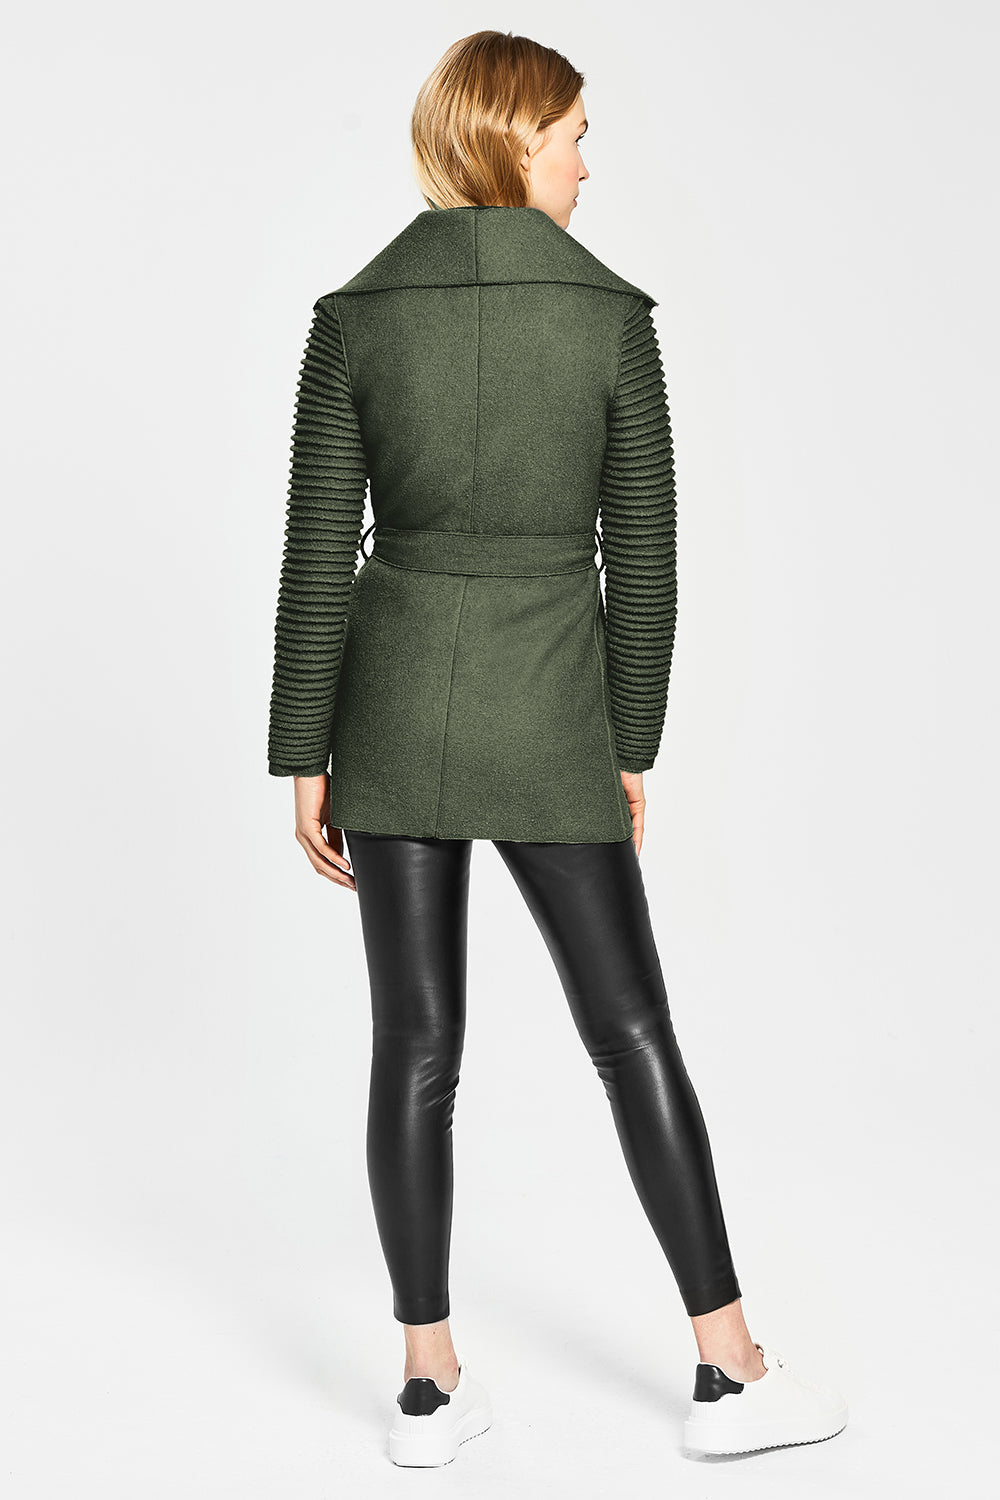 Sentaler Wrap Coat with Ribbed Sleeves featured in Superfine Alpaca and available in Army Green. Seen from Back.